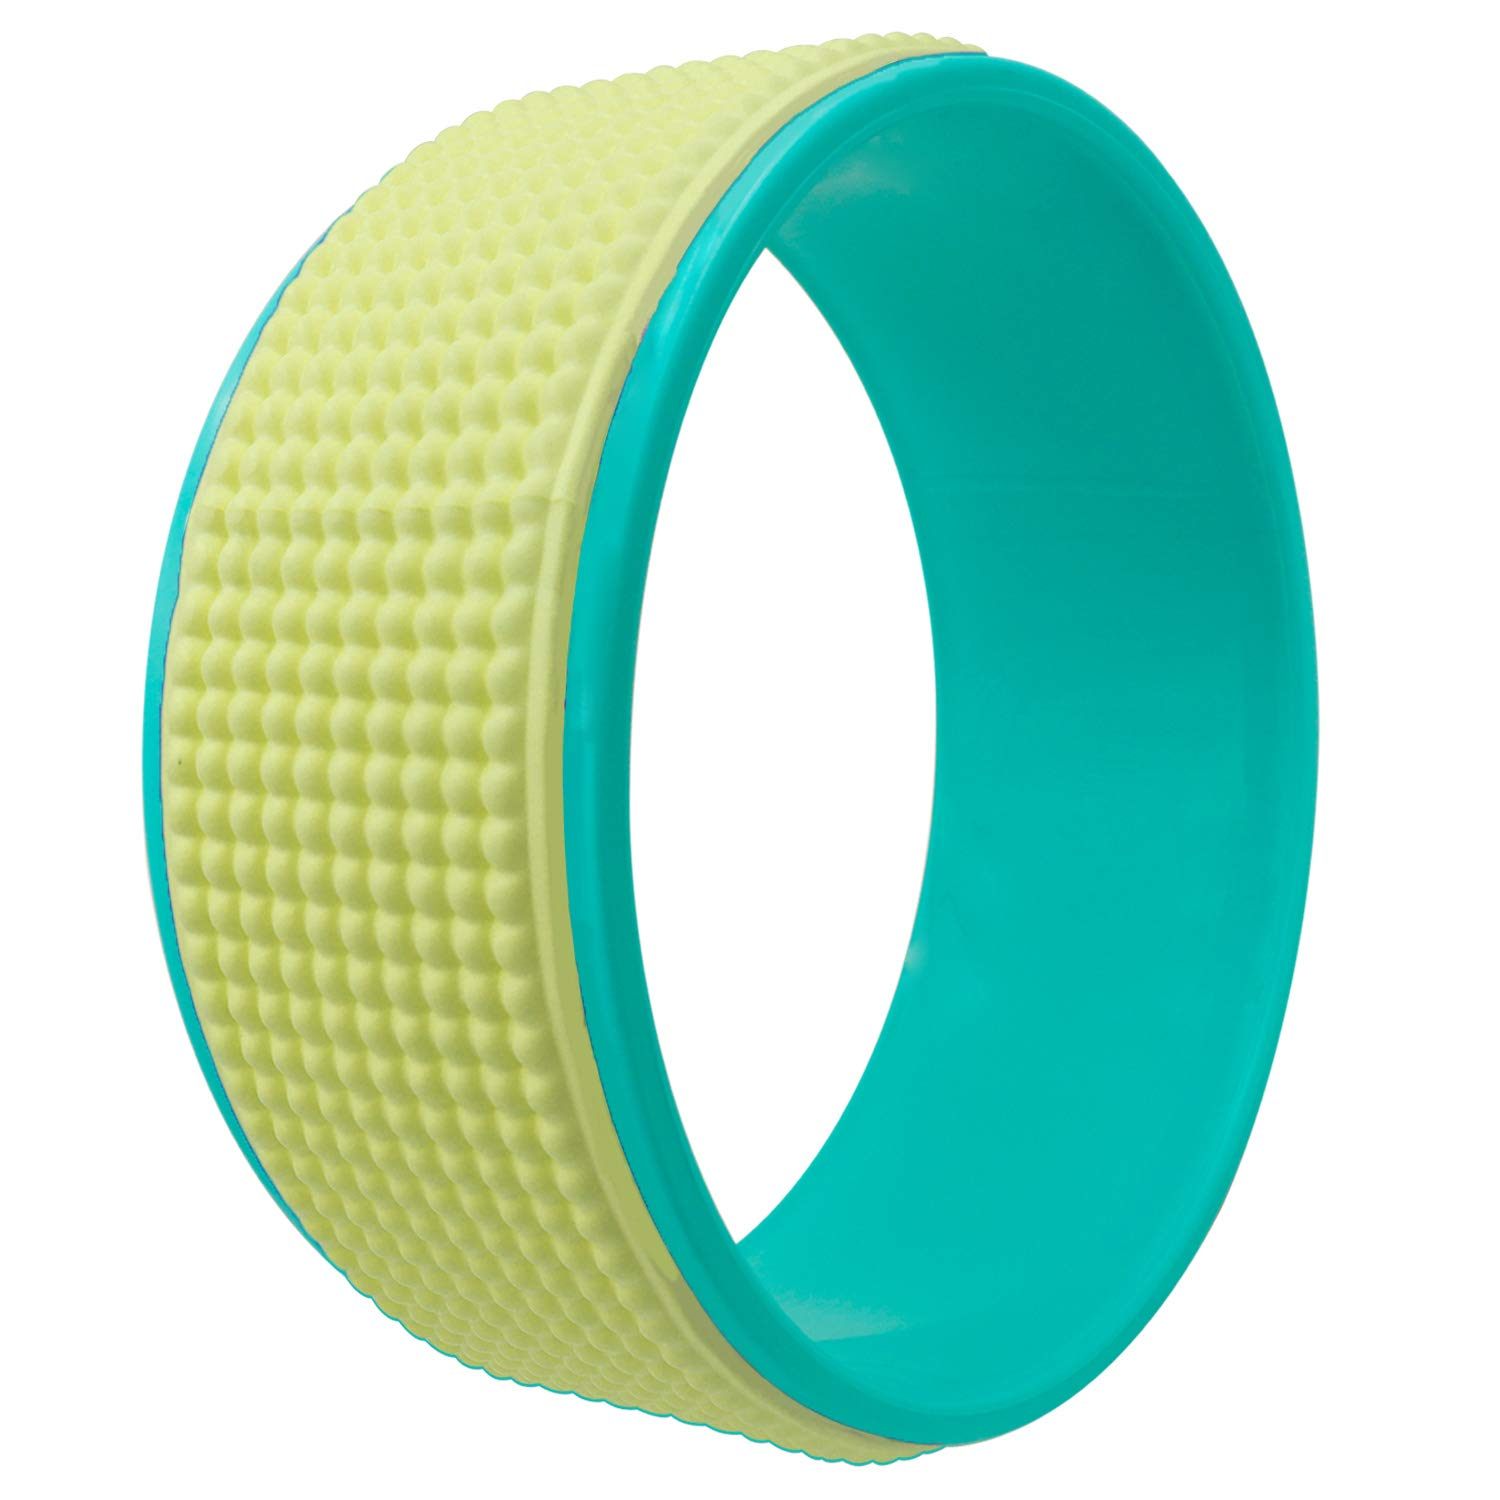 seeknfind 13 x 5 Inch Basic Yoga Wheel - Strongest & Comfortable Large Yoga Wheel Dharma Yoga Wheel for Stretching Increasing Flexibility and Improving Backbends (Massage-Green and Yellow)